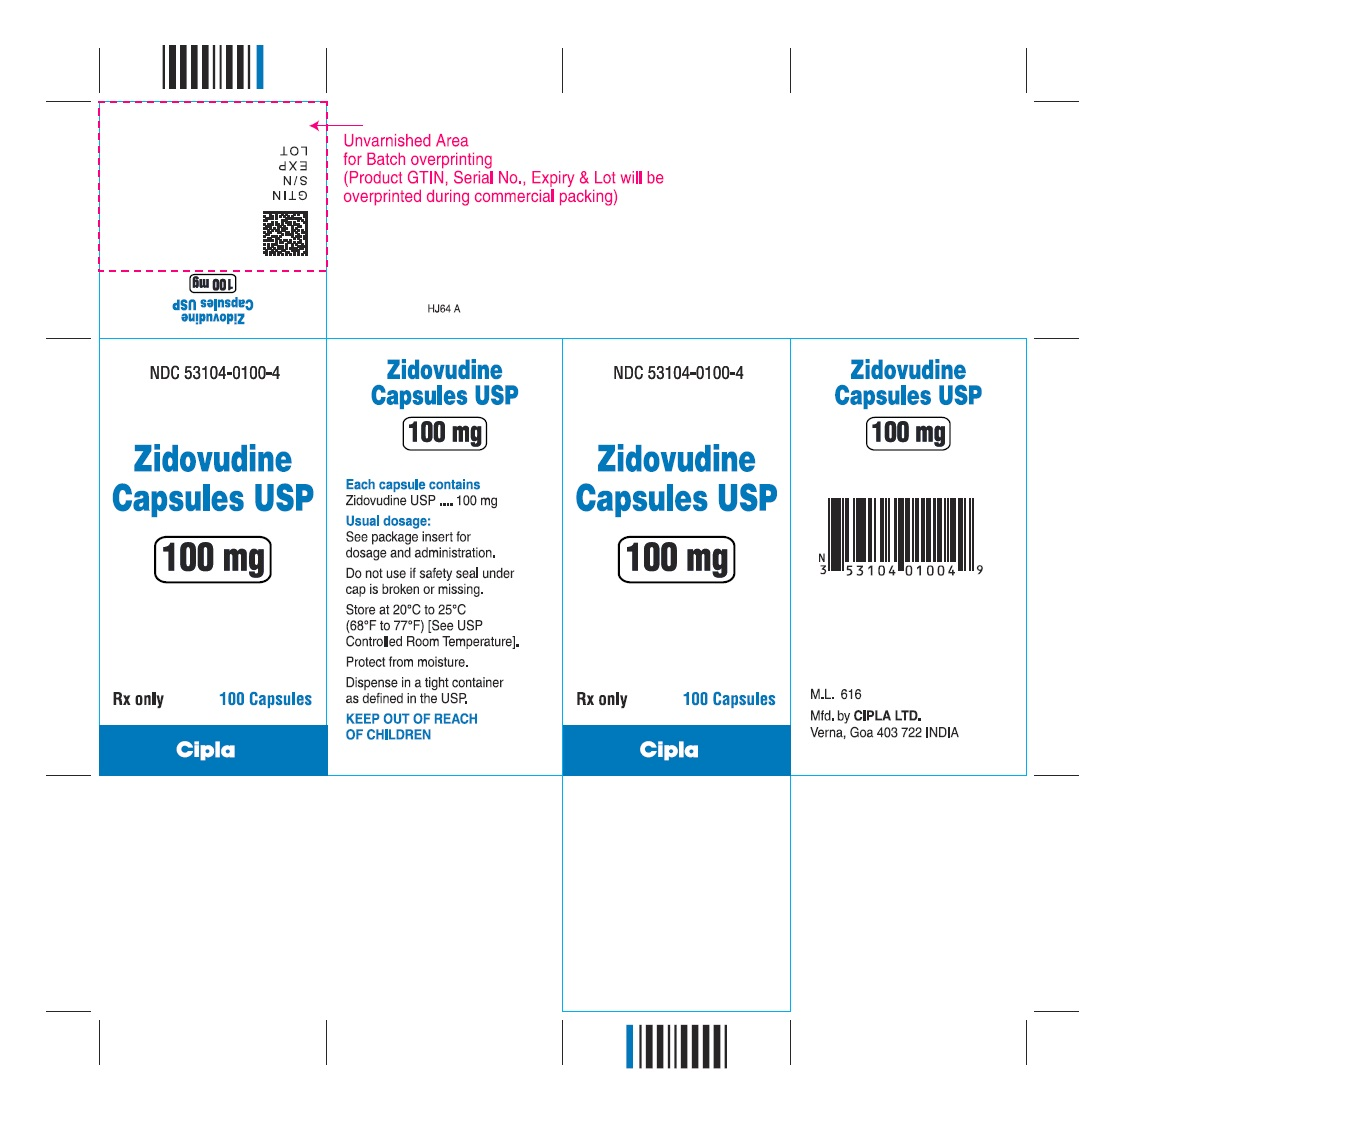 zidovudine capsules USP 100 mg - 100s count bottle label